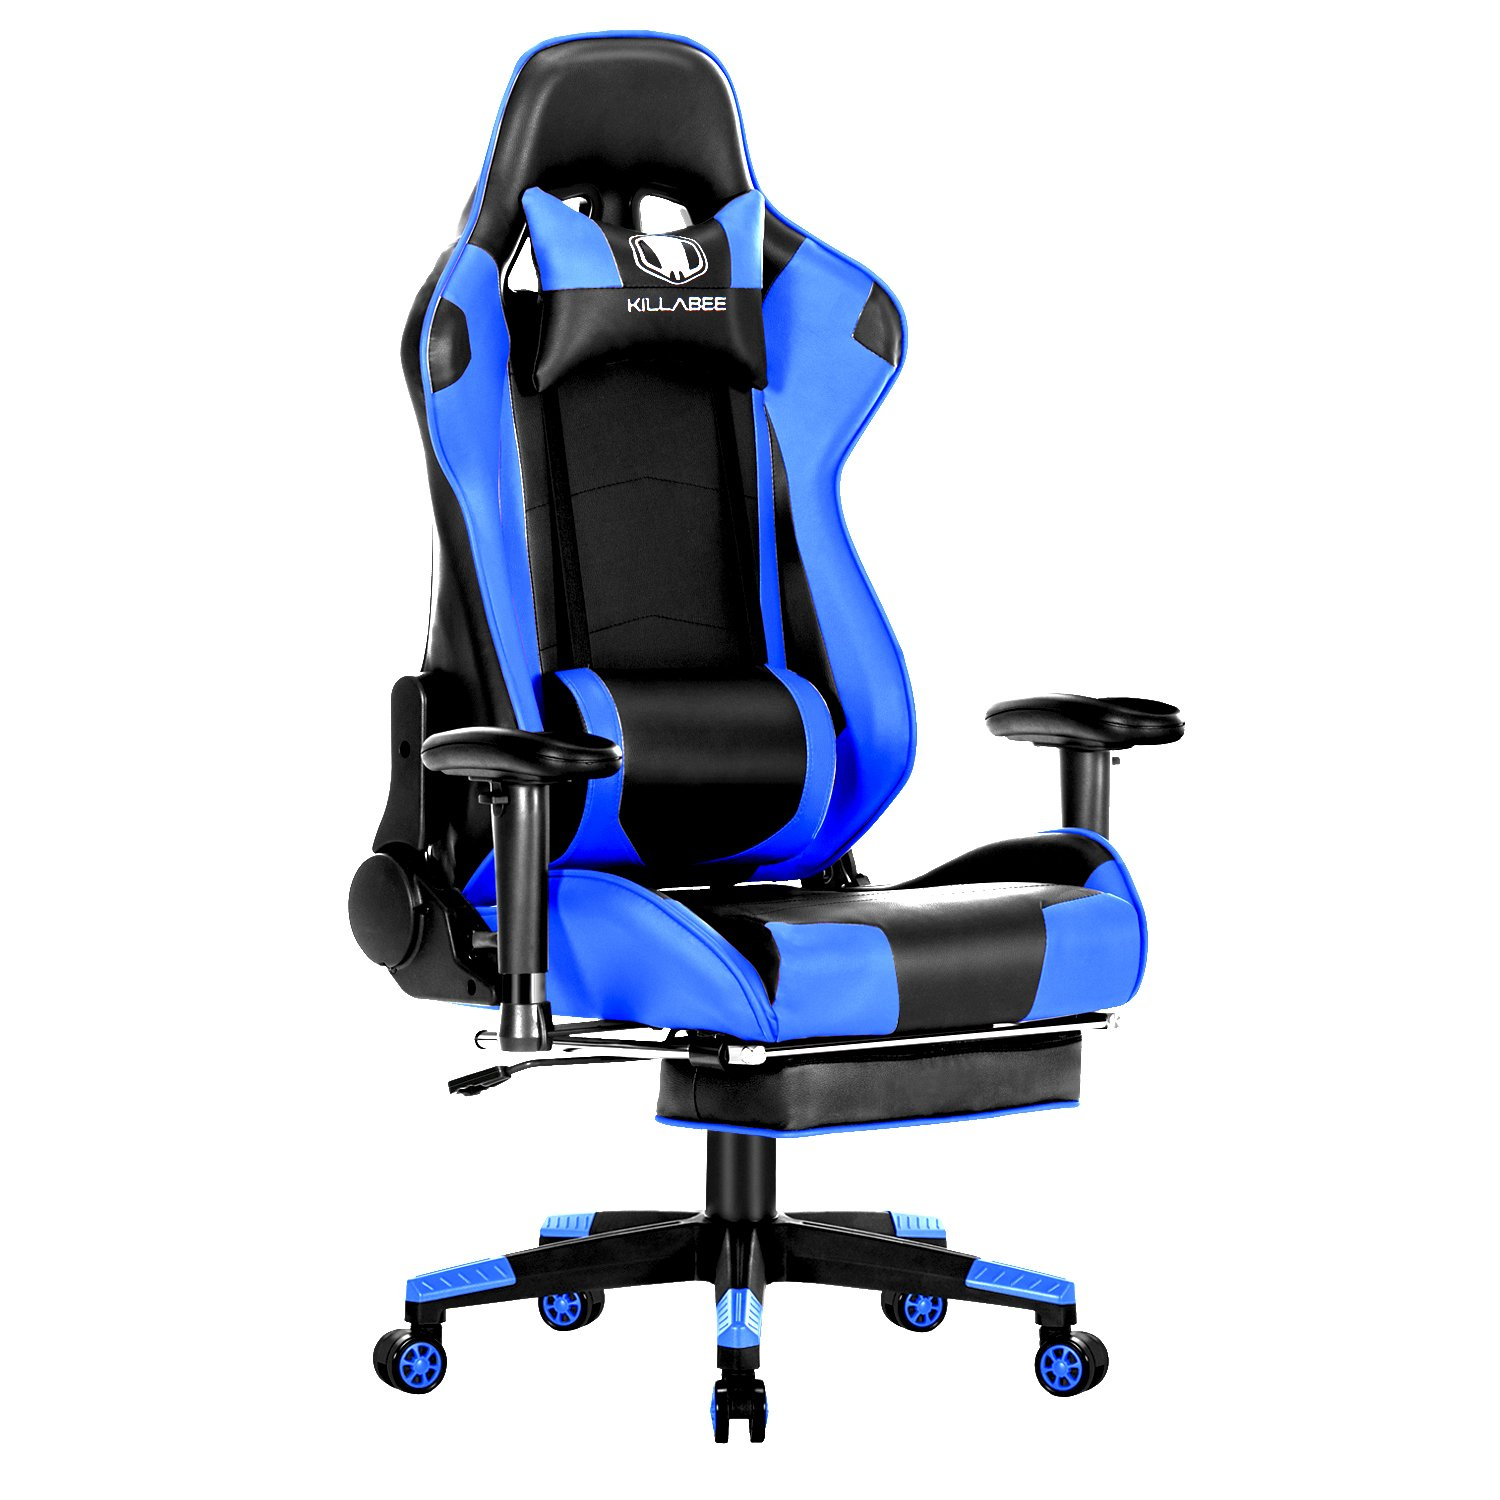 Marvelous Killabee 8204 Blue Gaming Chair Games Chair Gaming Pdpeps Interior Chair Design Pdpepsorg